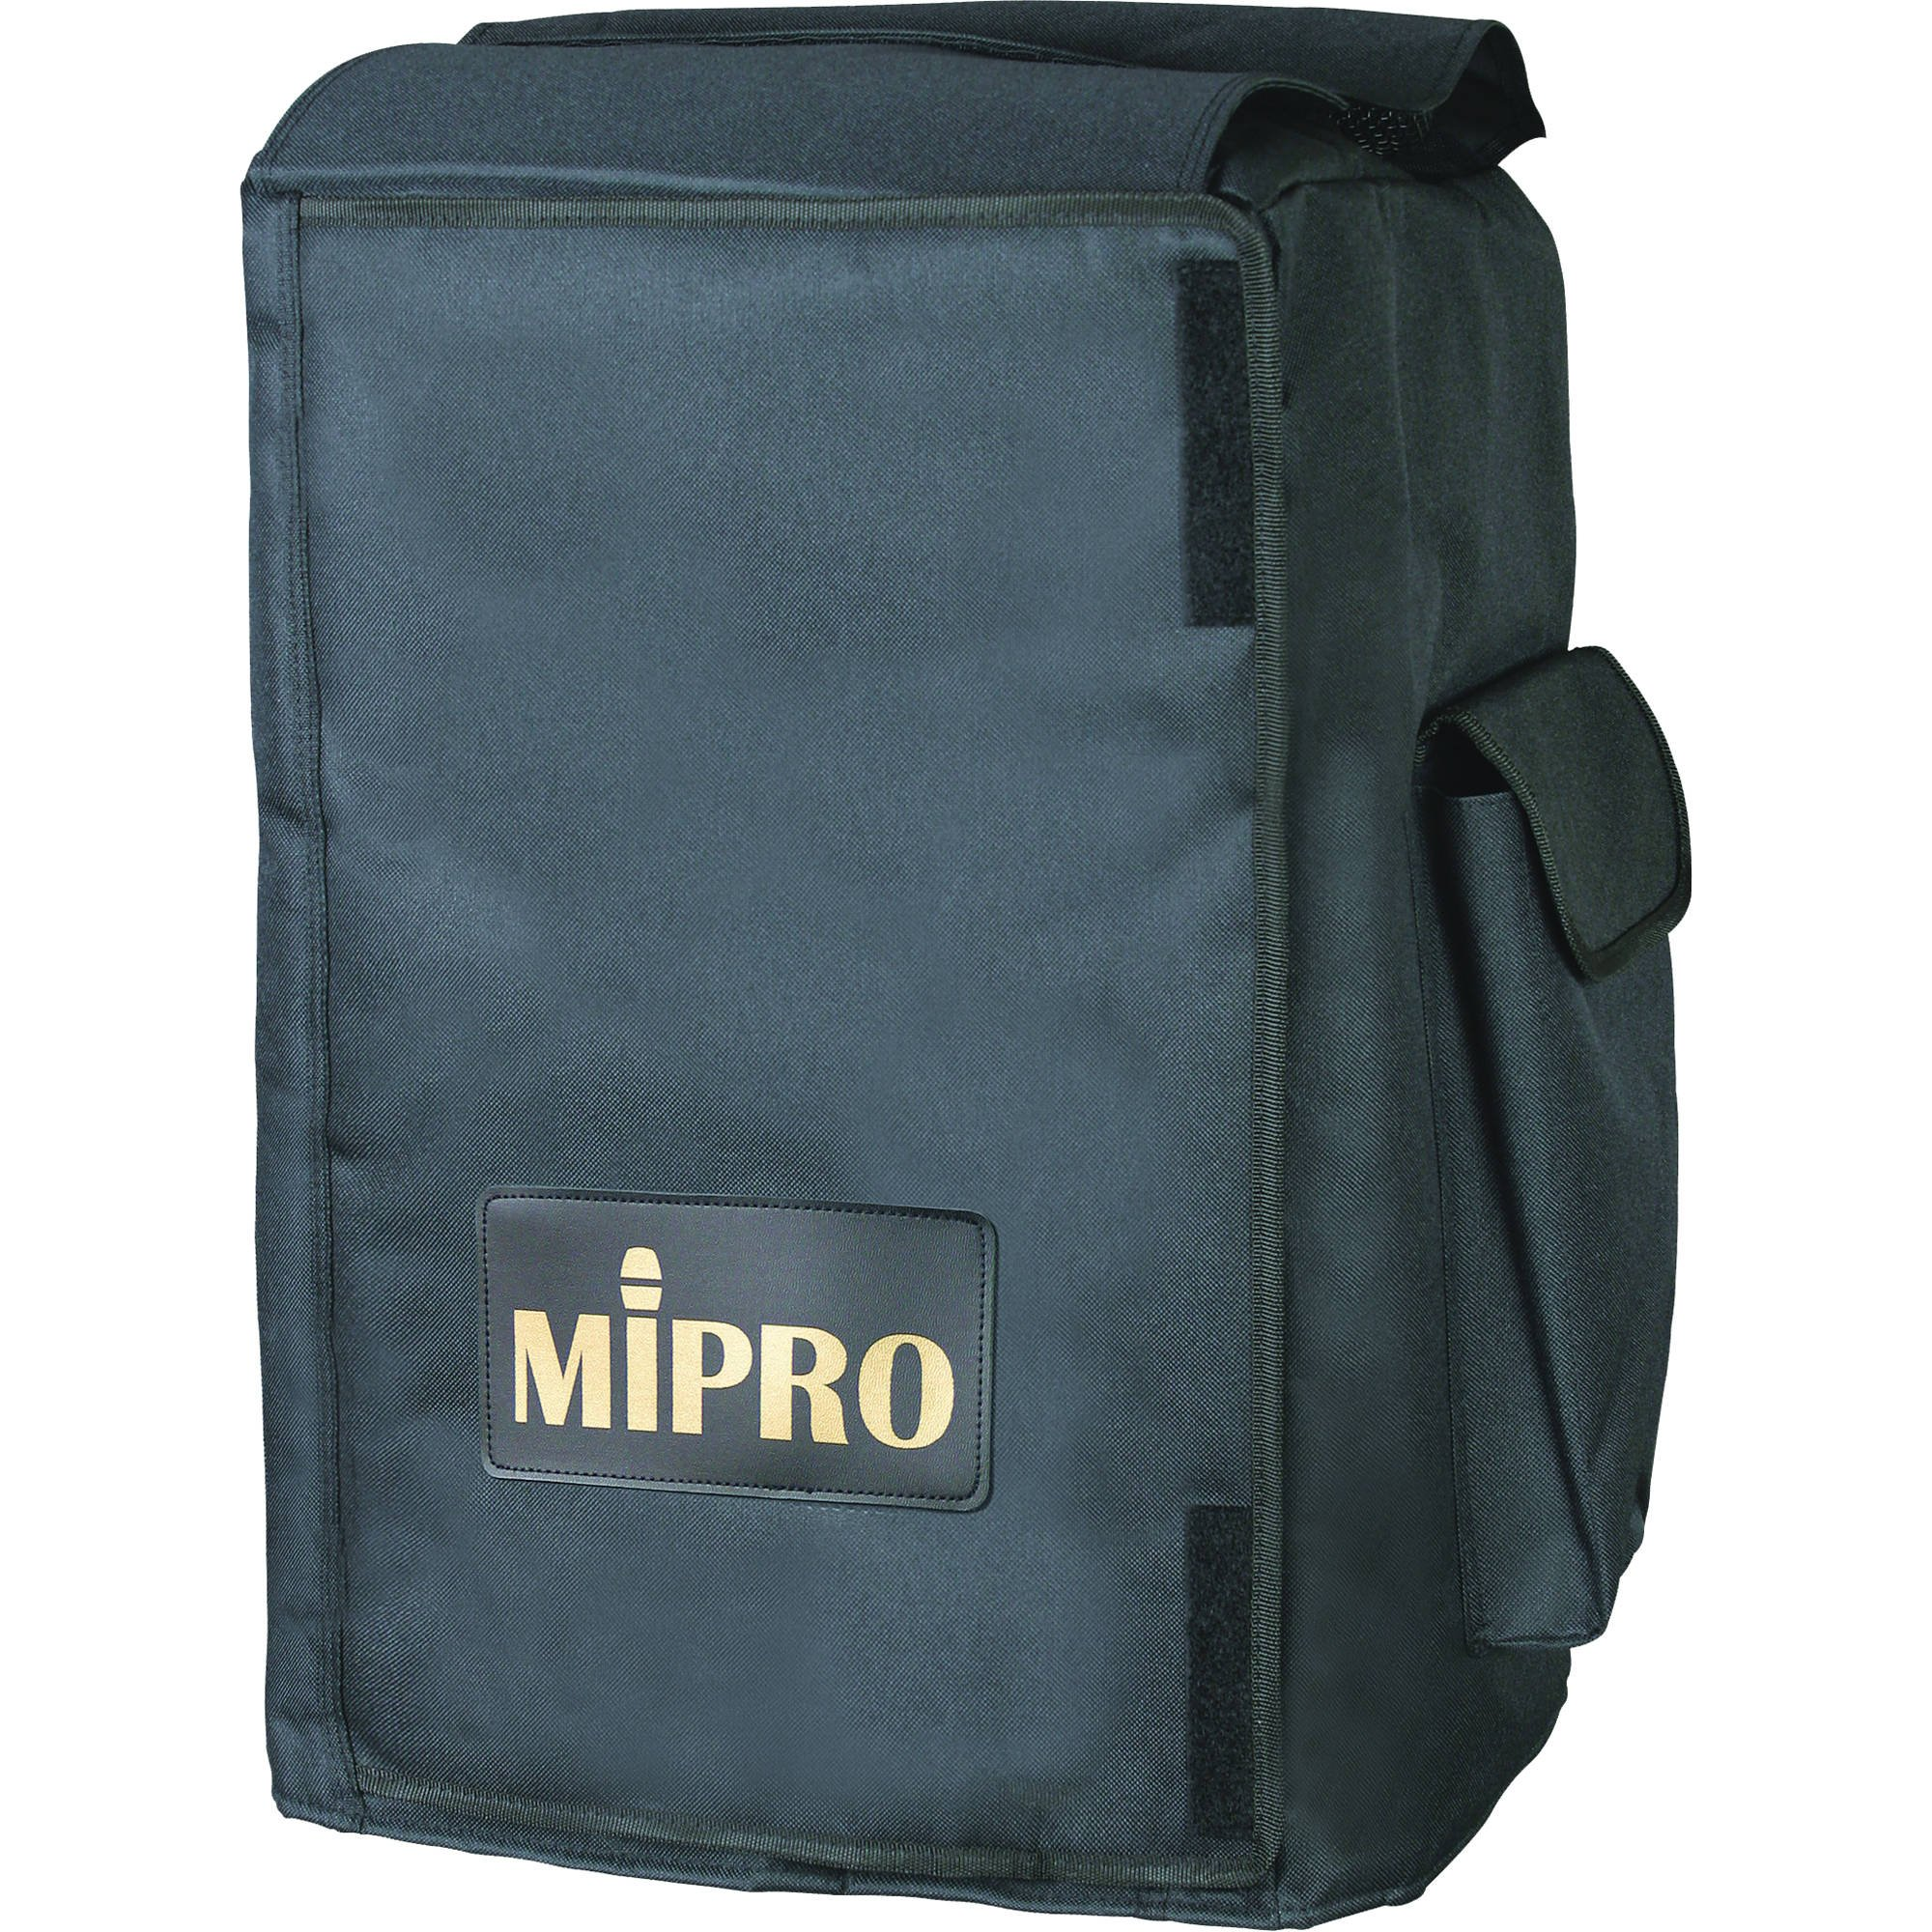 MIPRO SC-80 Protective Cover with Side Pouch for MA-808